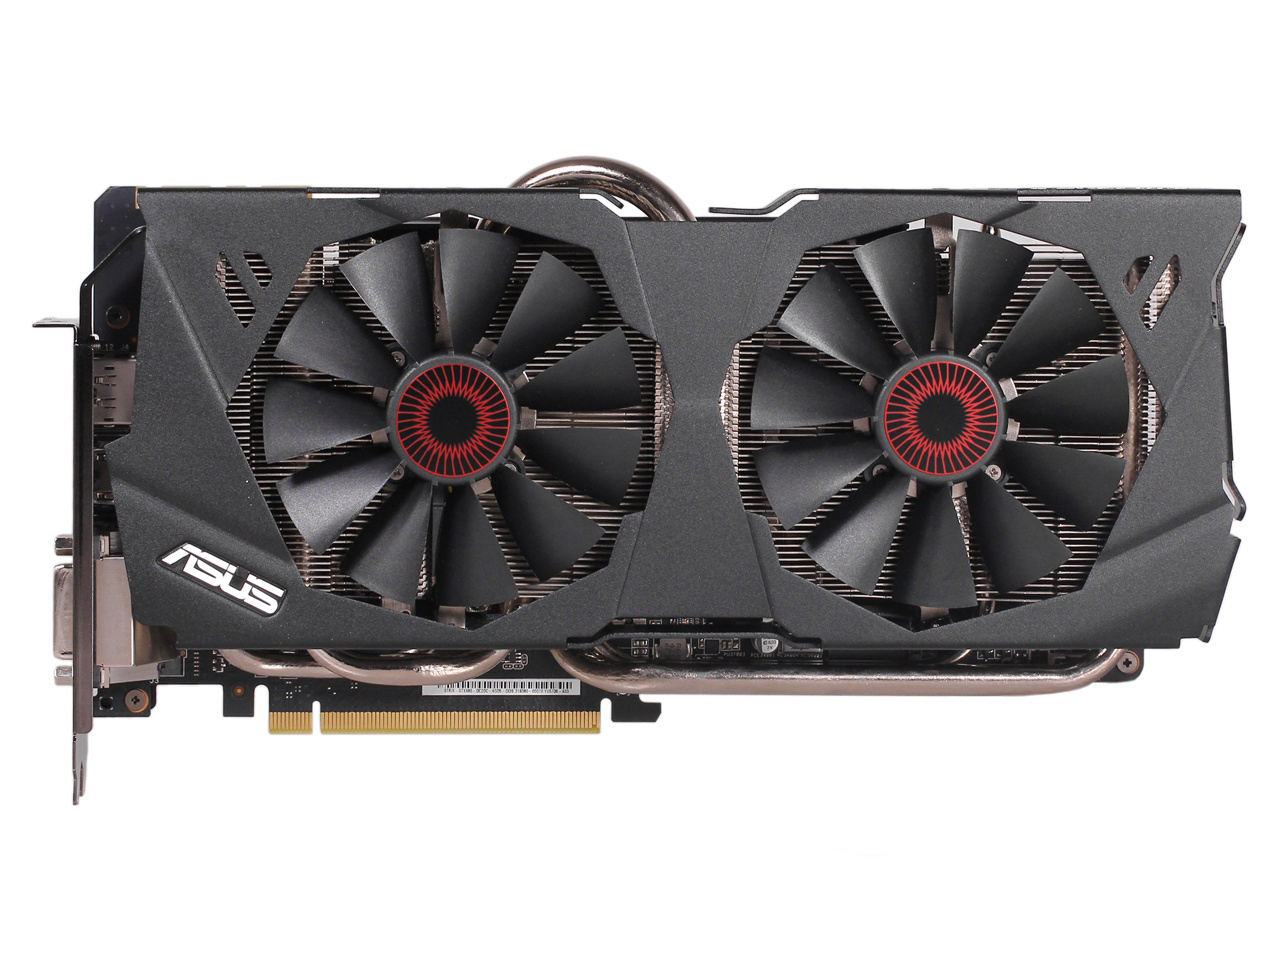 Used ASUS GTX 980 4GB 256Bit GDDR5 Graphics Cards for nVIDIA VGA Cards Hdmi Dvi